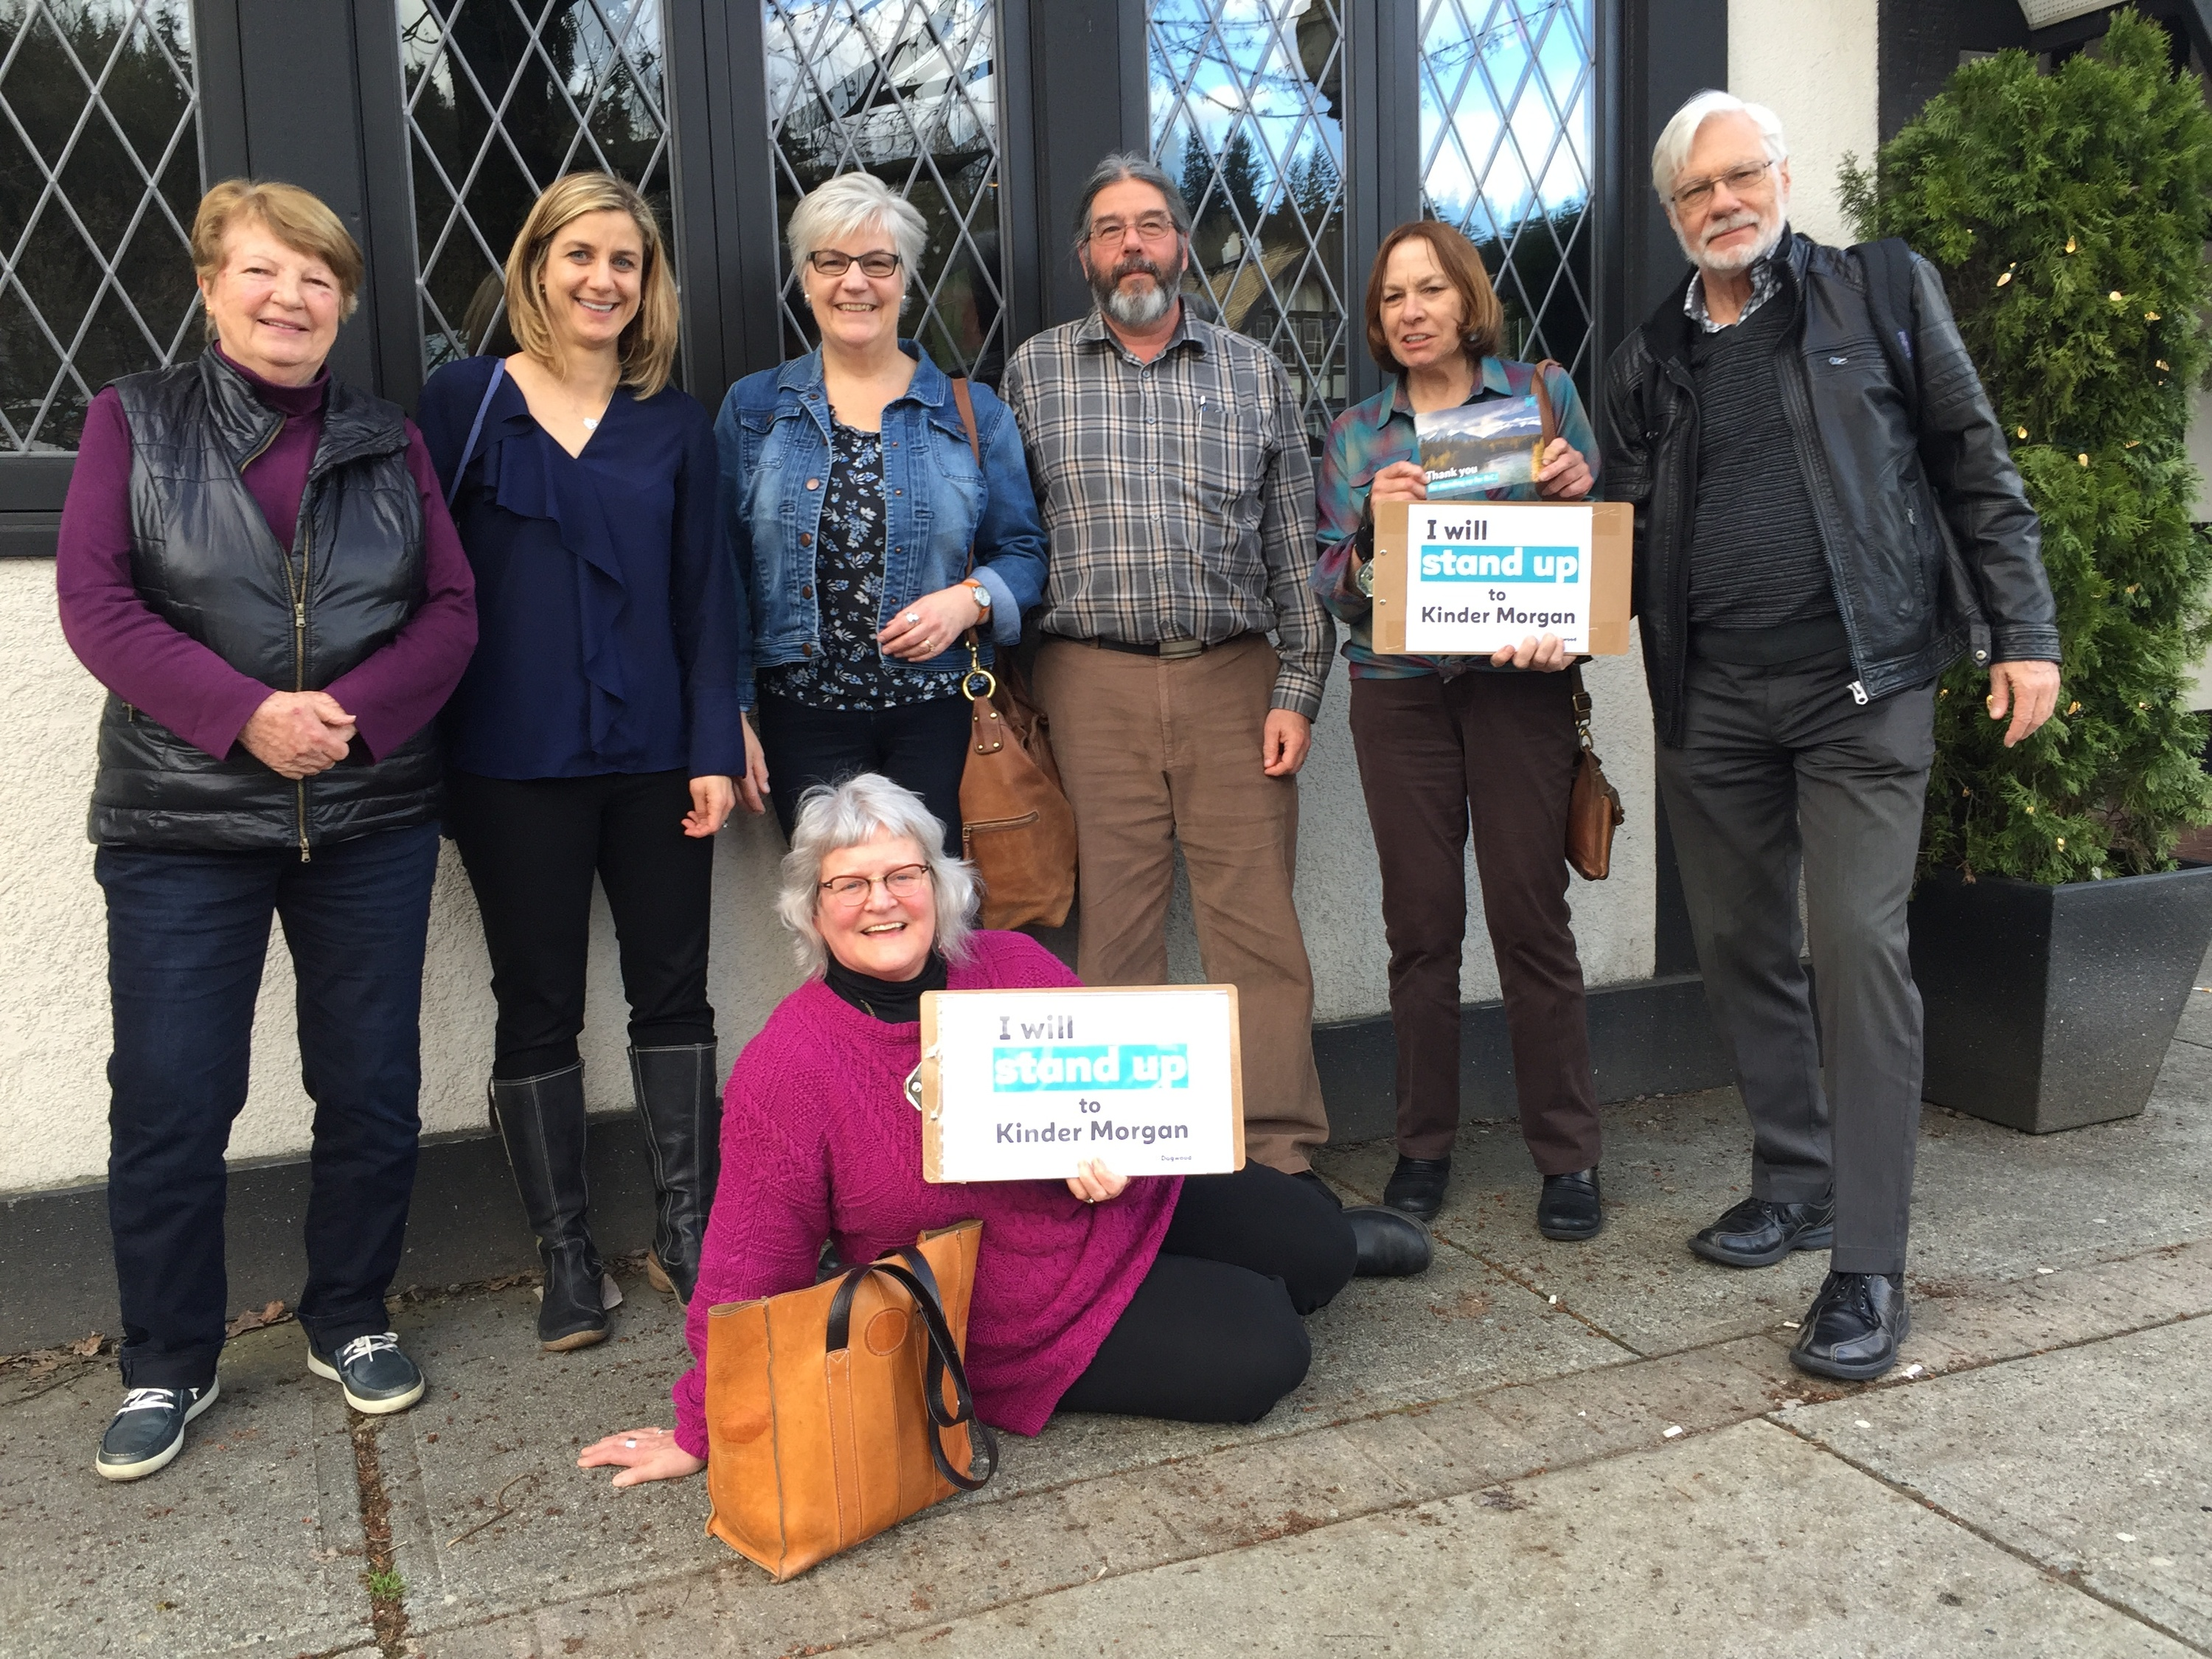 Tri Cities Team Members Canvassing to stop Kinder Morgan